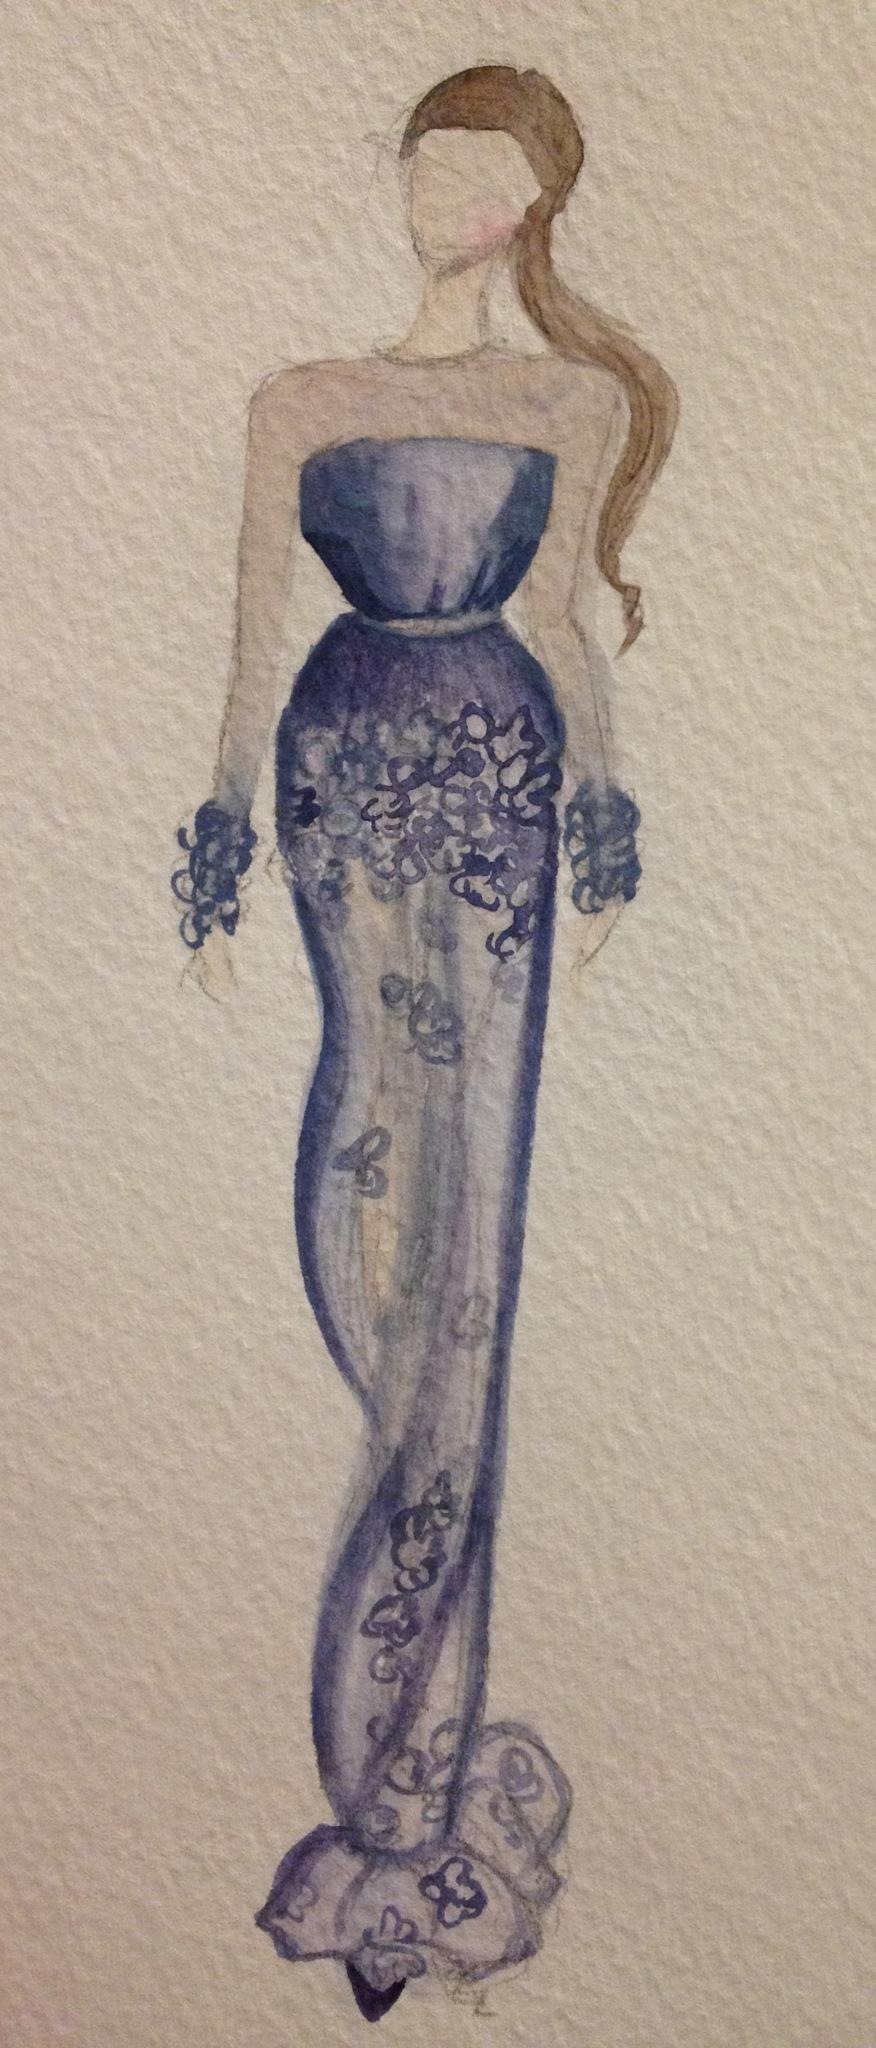 Watercolor. Diamond - image 1 - student project